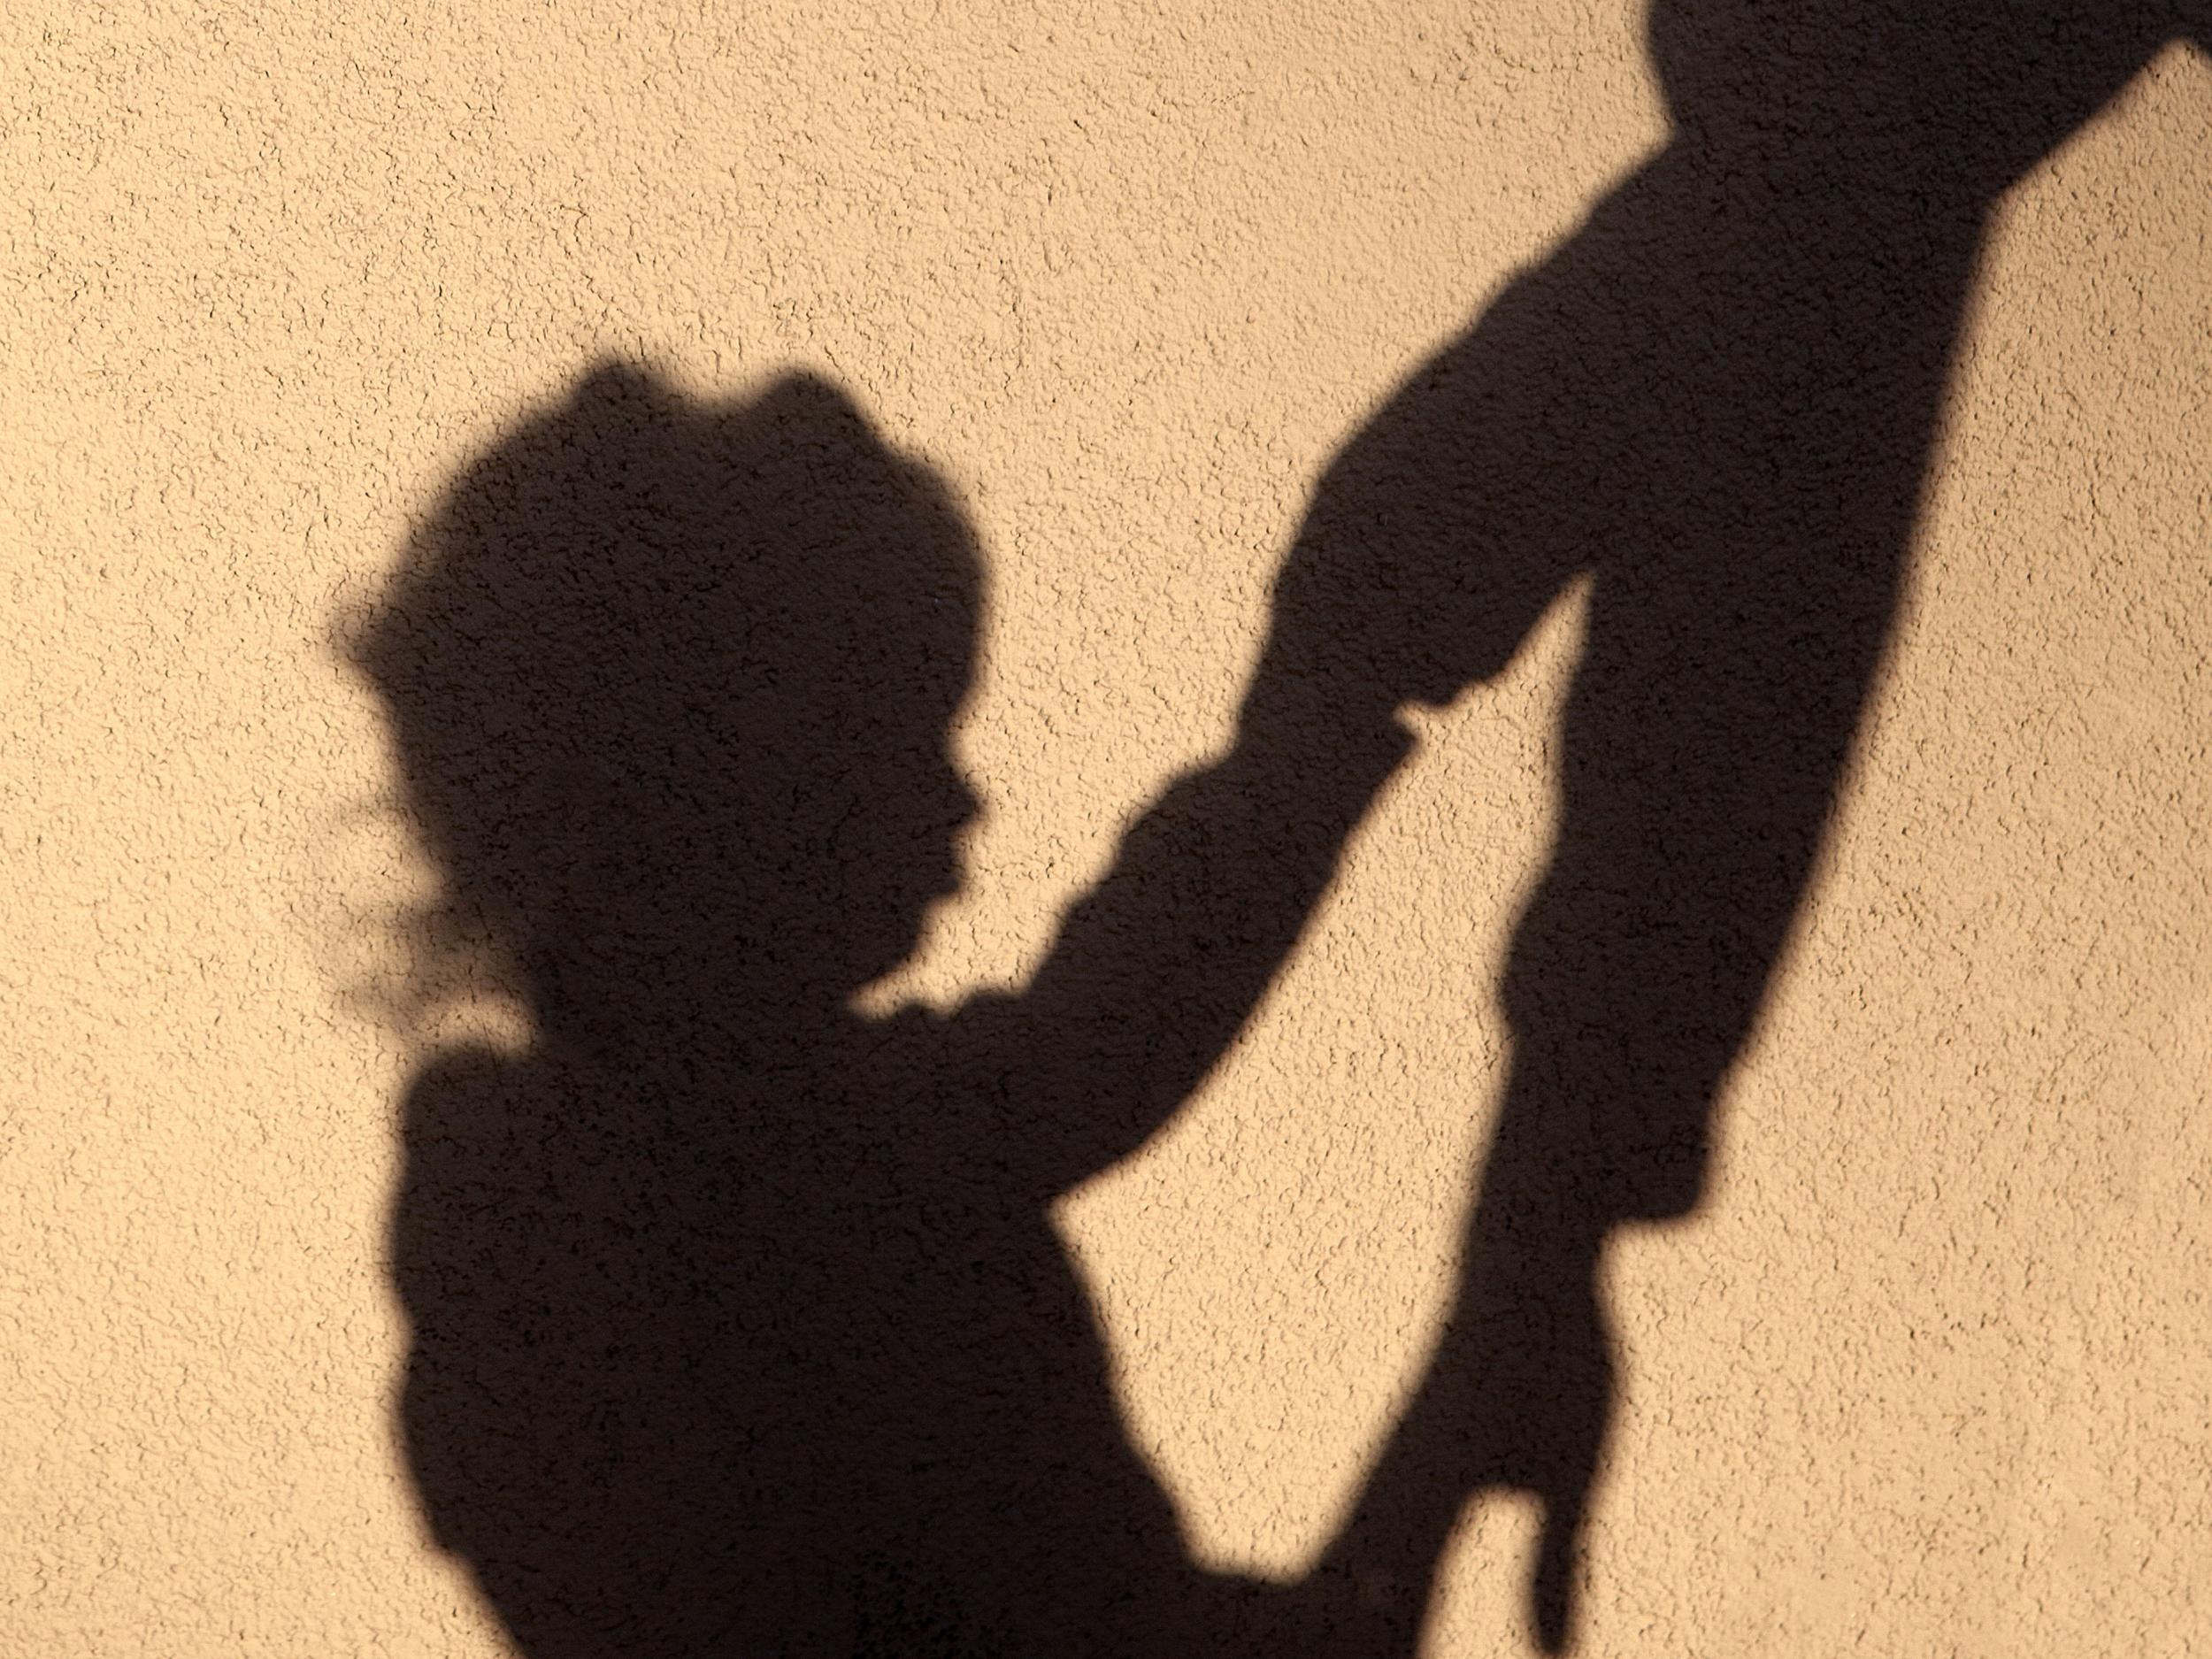 Parents of 10-year-old rape victim refuse to see their daughter's